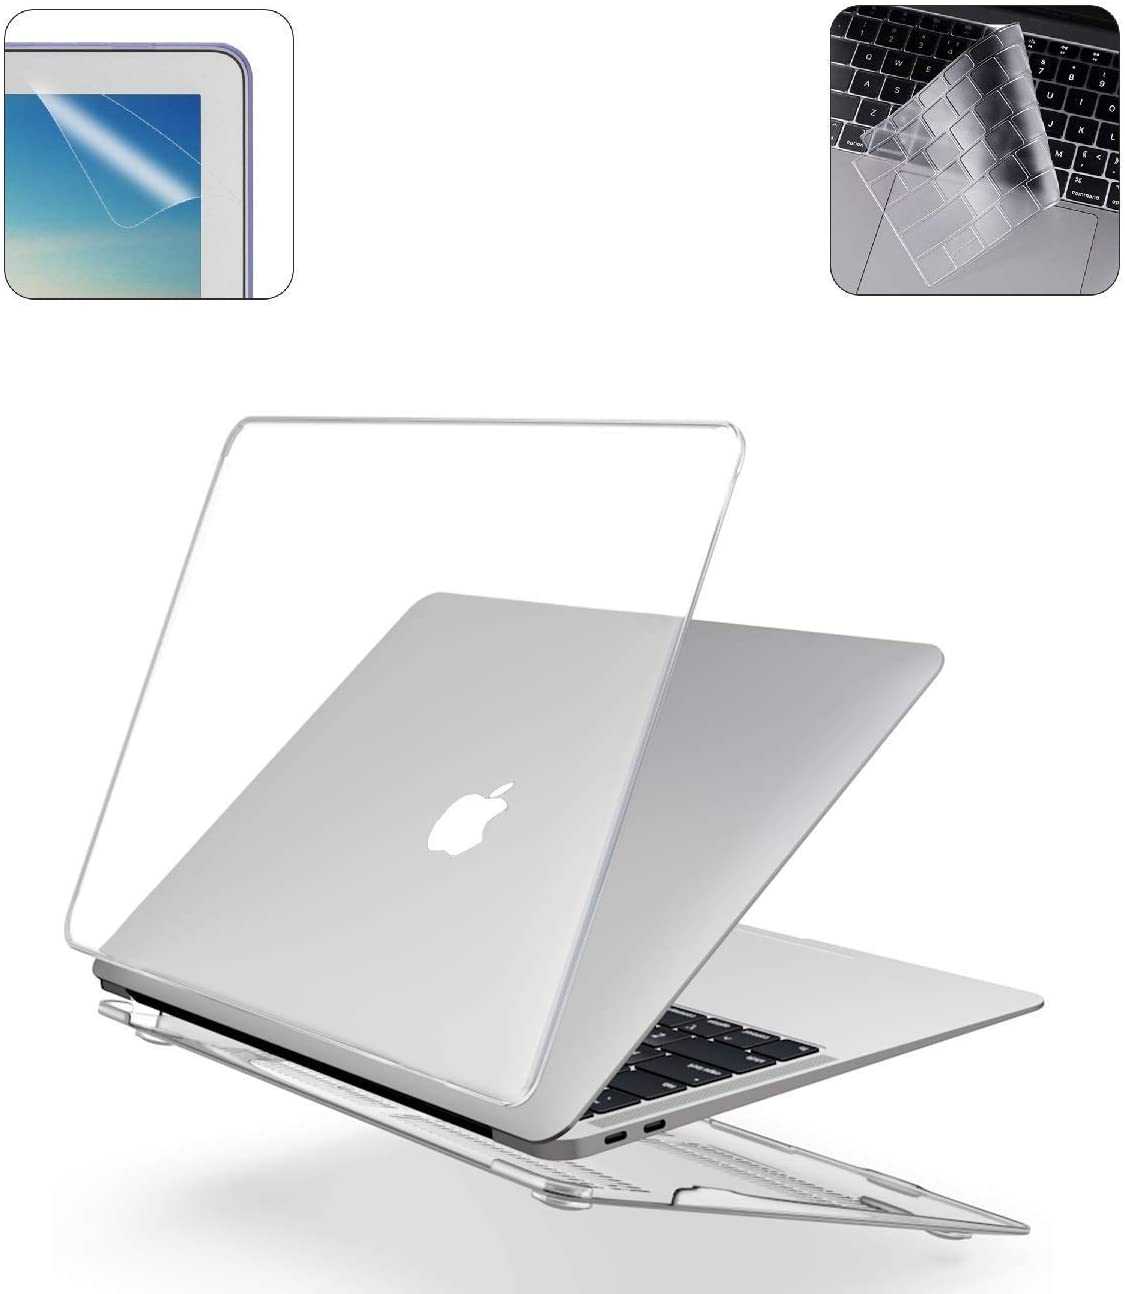 A2179 A1932 MacBook Air 13 Inch Case Keyboard Skin Cover Screen Protector for 2020 2019 2018 Release MacBook with Retina Display Touch ID - Crystal Clear